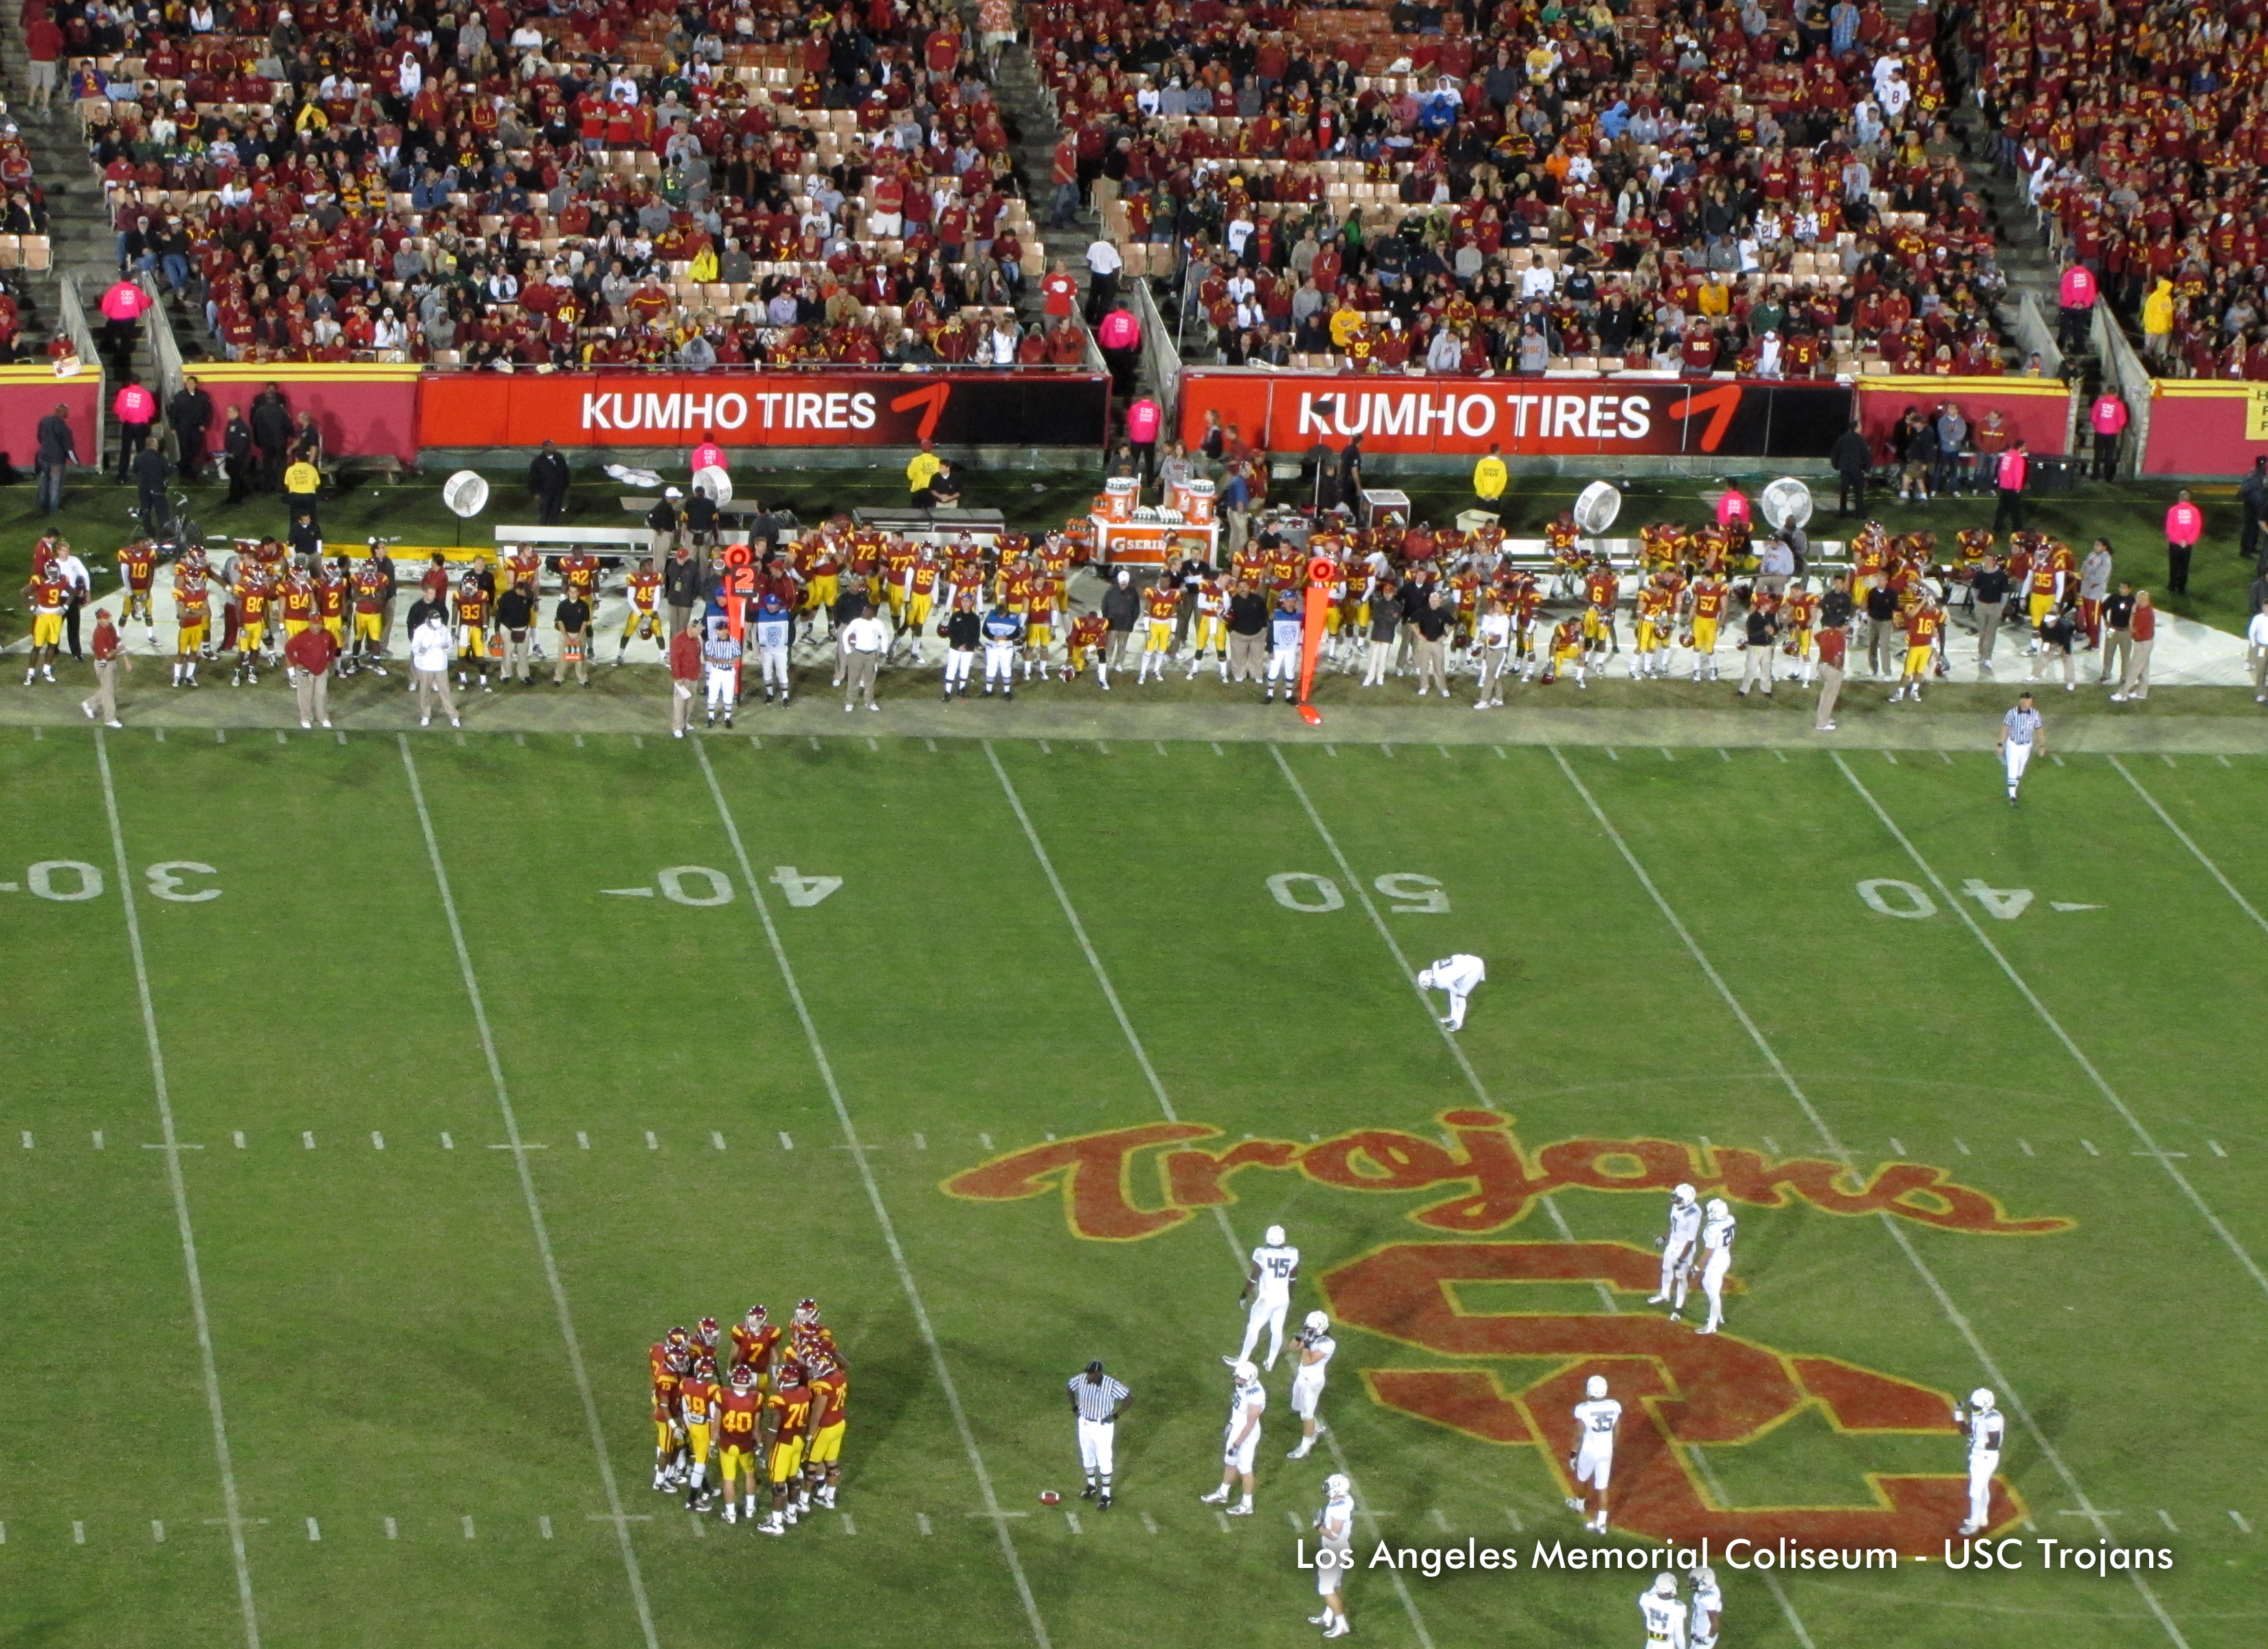 Kumho is official tire of USC Athletics